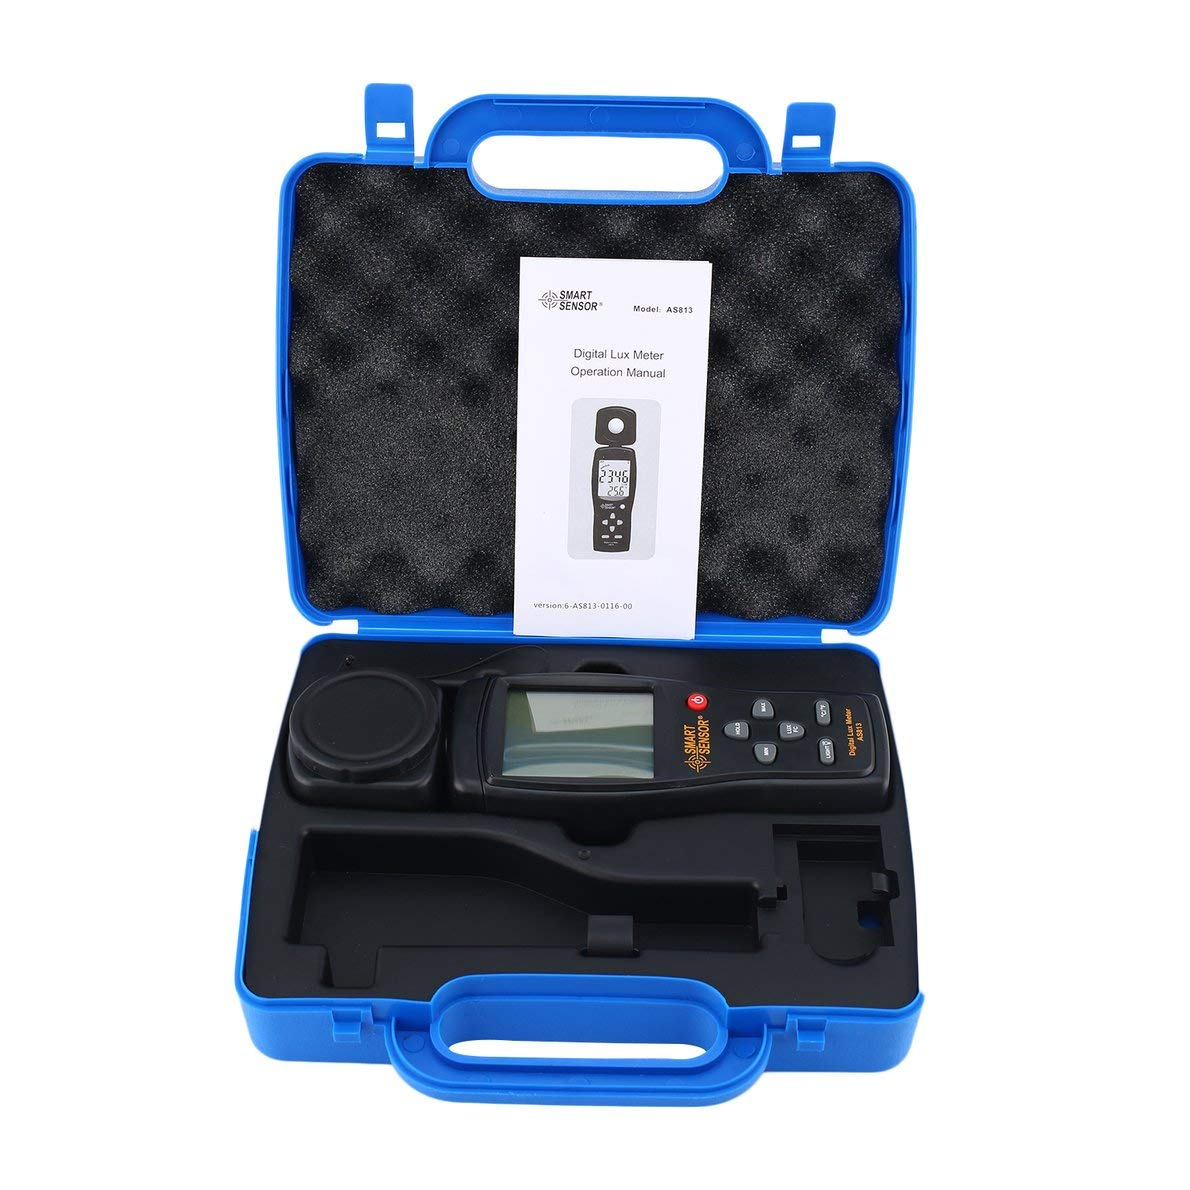 Uqiangbao Fit AS813 Digital Luxmeter Light Meter Lux/FC Meter Luminometer Photometer 100,000 Lux spectrometer spectrophotometer